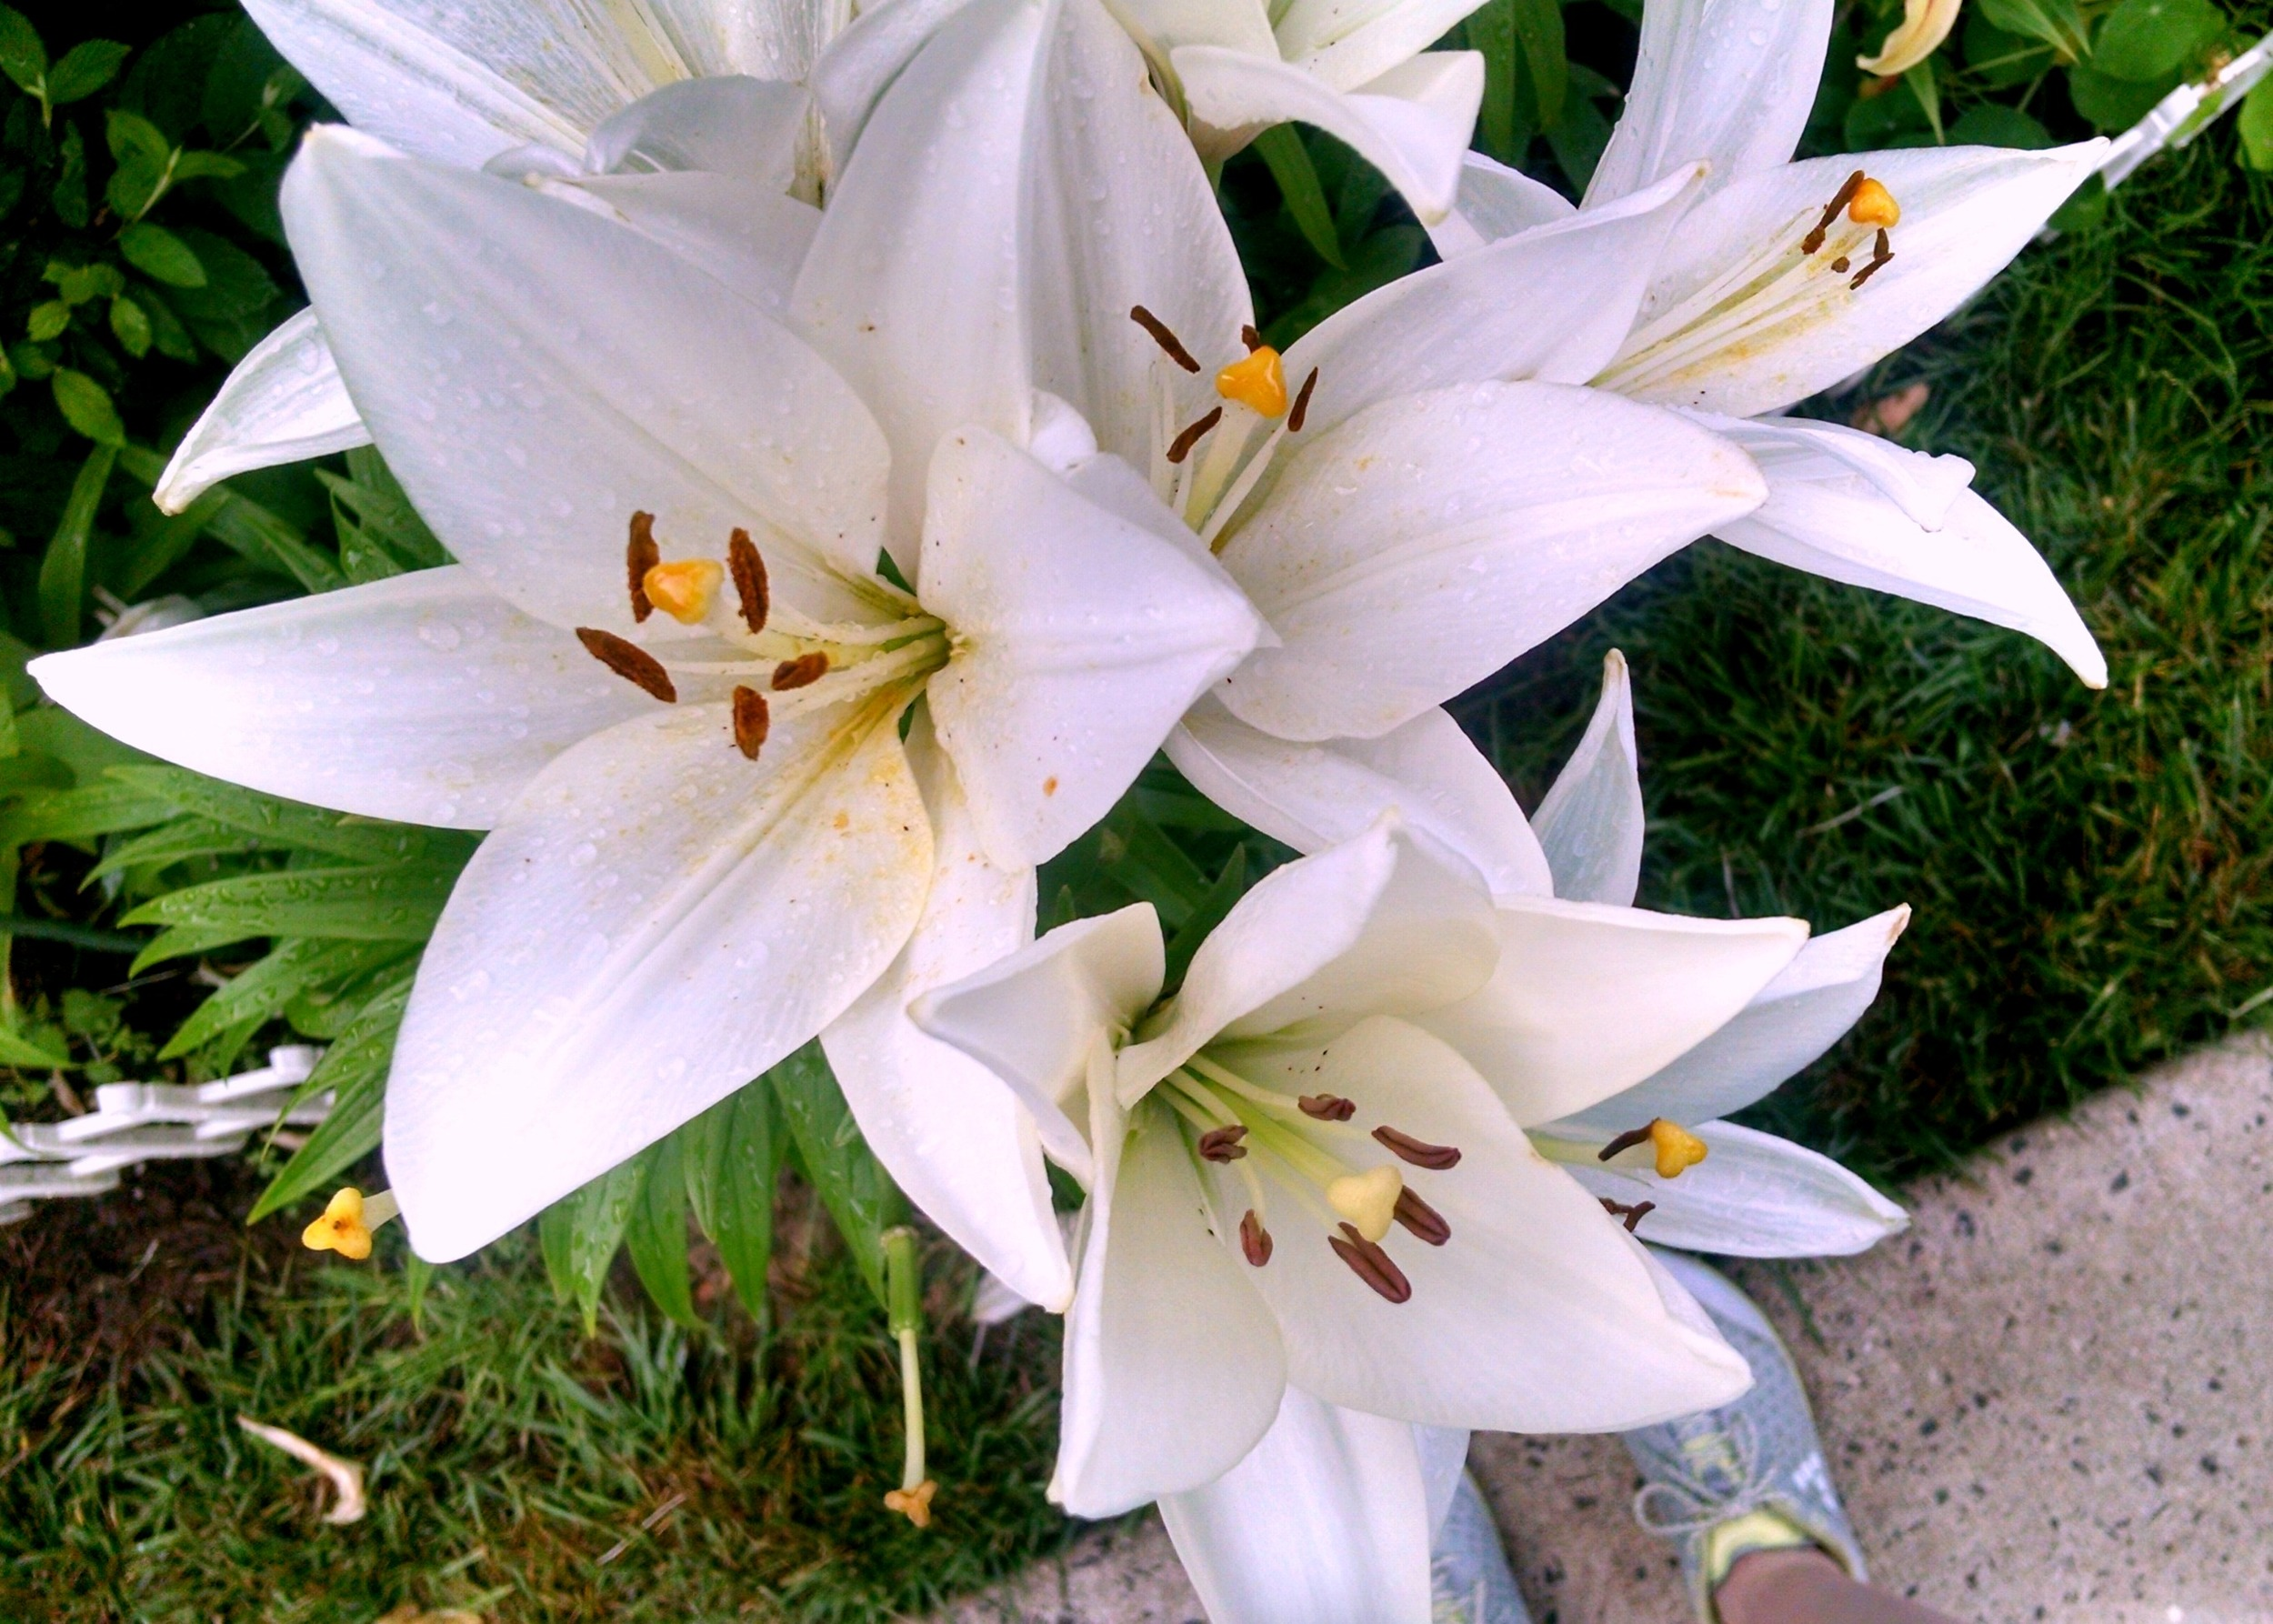 June lilies after a weekday run.